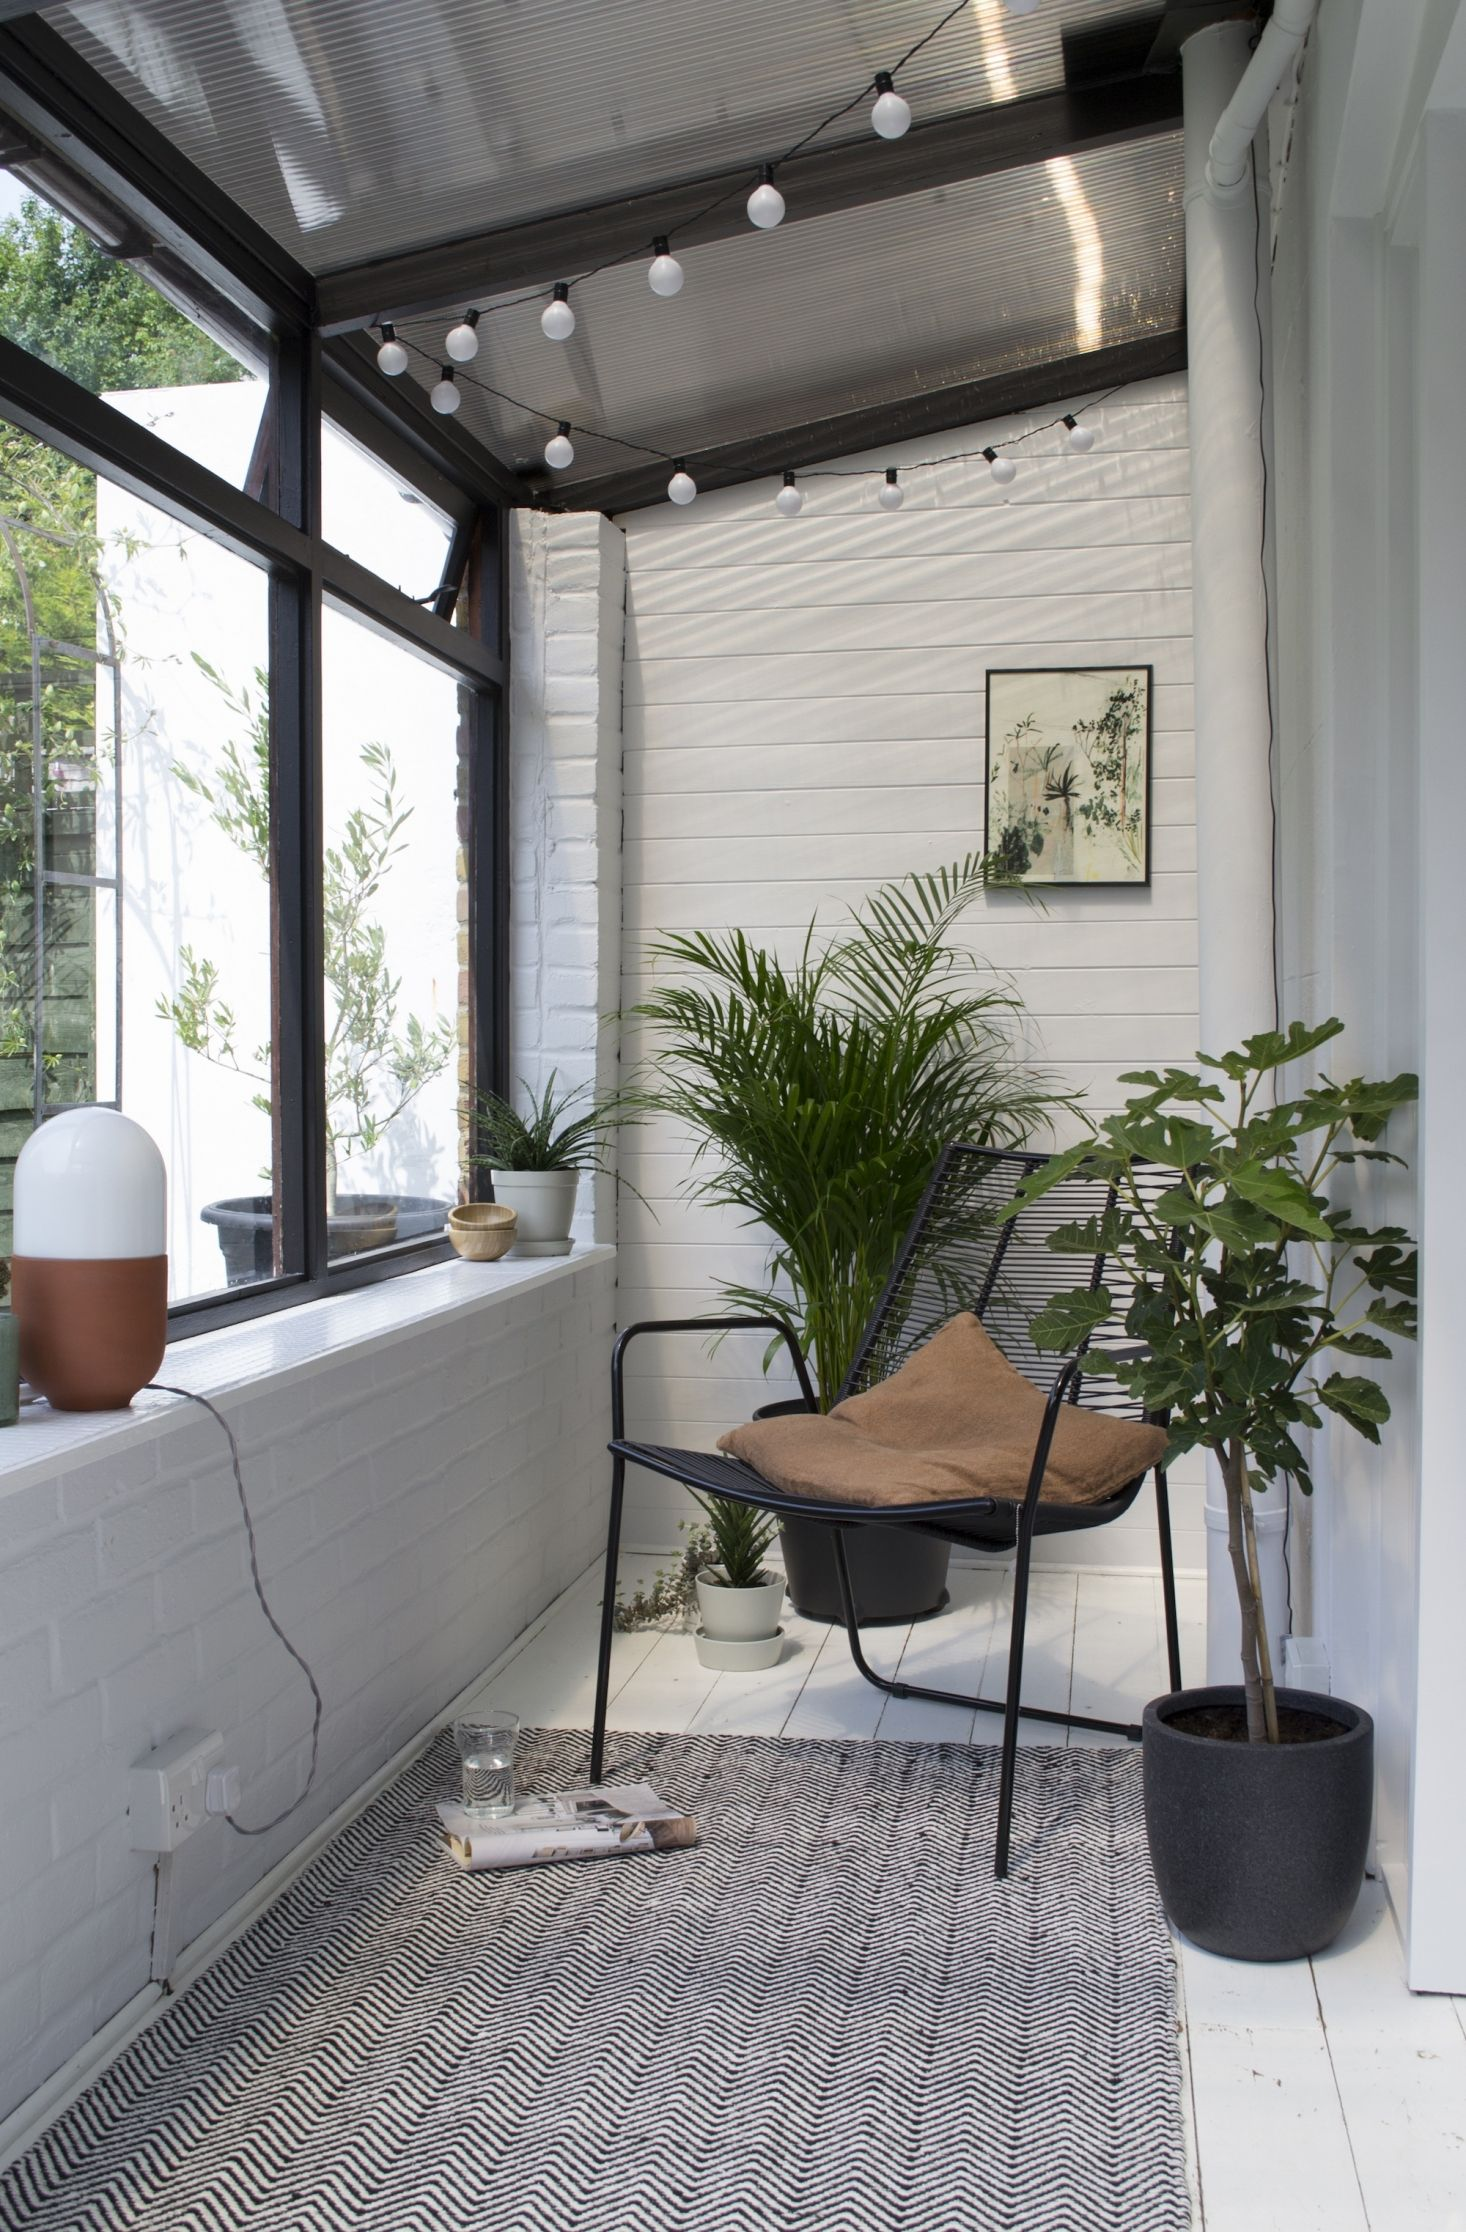 The sunroom faces southwest and gets full sunlight all day long